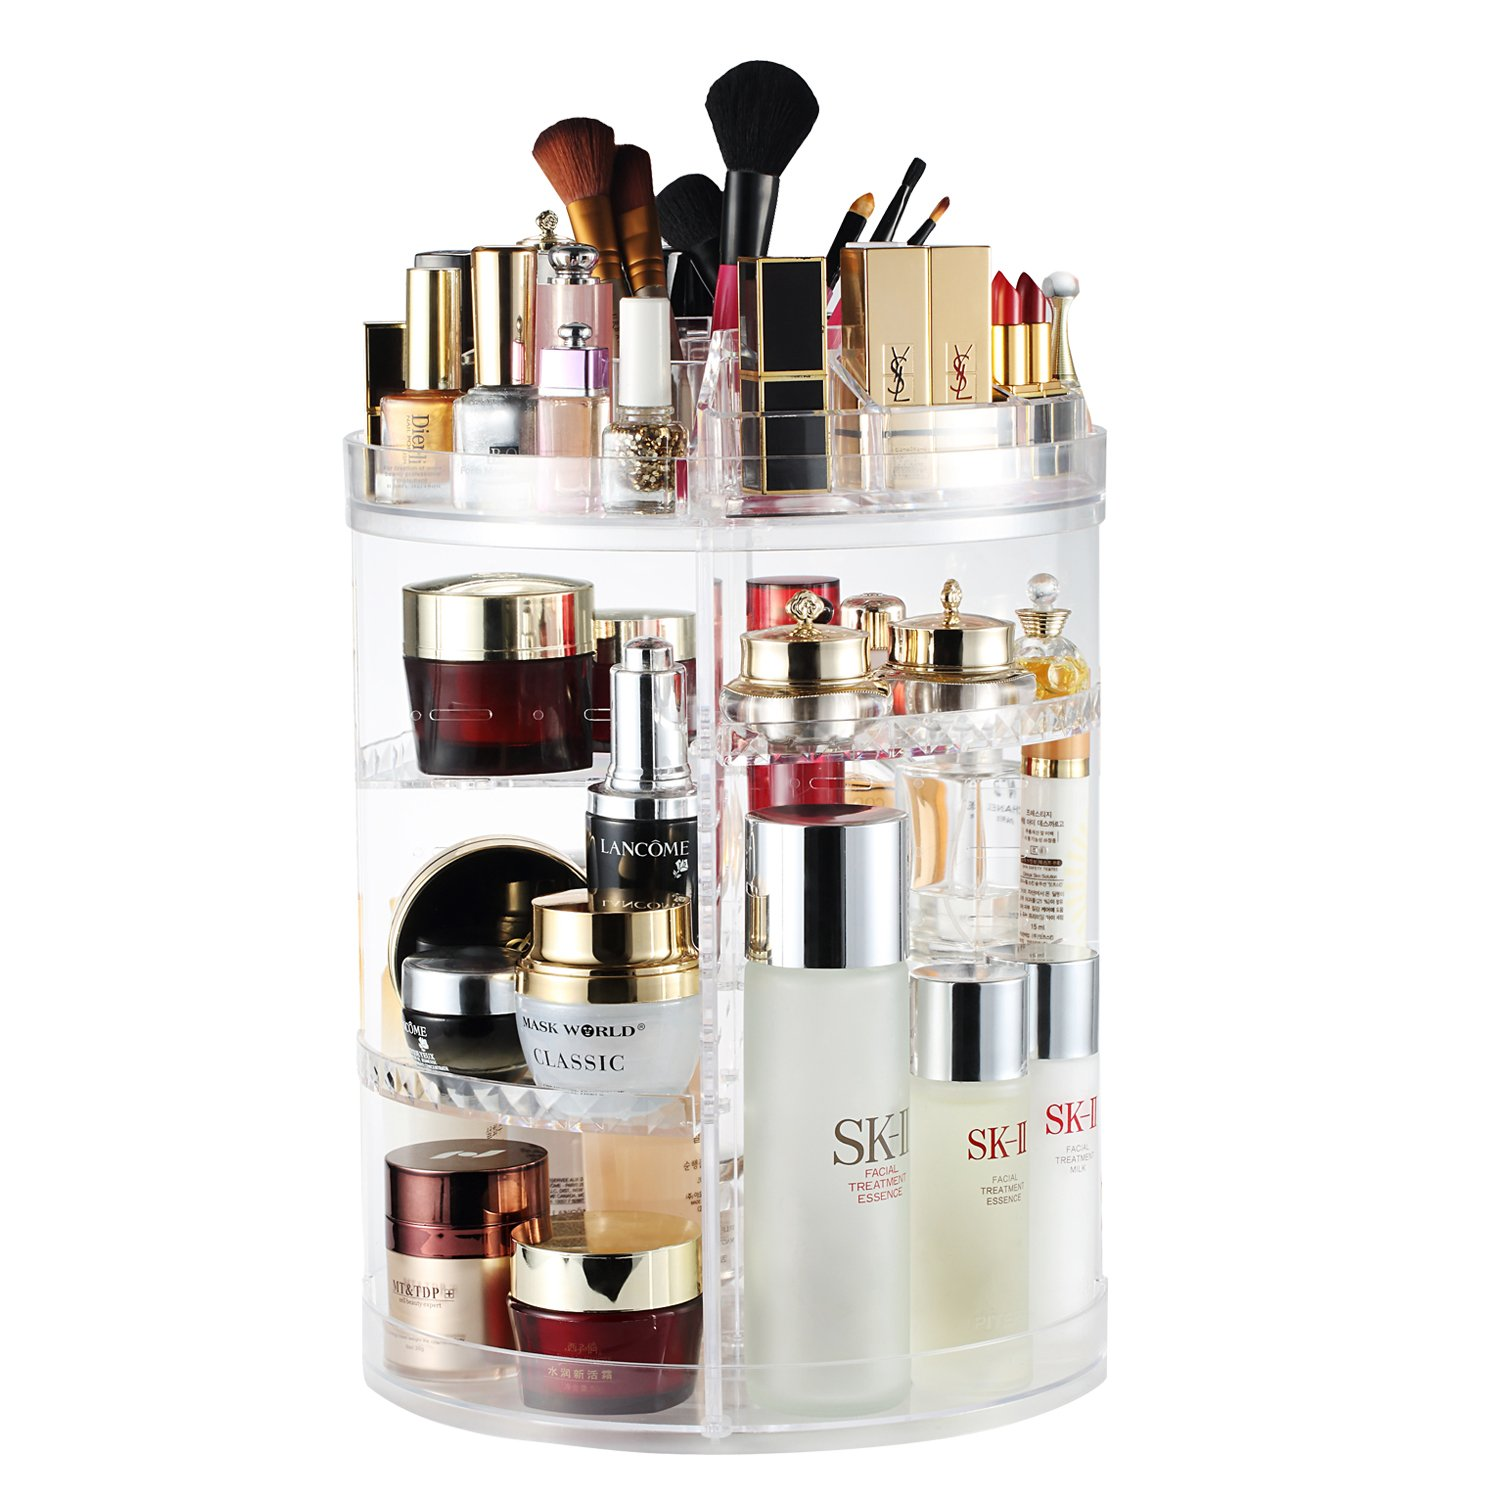 AMEITECH Makeup Organizer, 360 Degree Rotating Adjustable Cosmetic Storage Display Case with 8 Layers Large Capacity, Fits Jewelry,Makeup Brushes, Lipsticks and More, Clear Transparent 360DRMO-CL